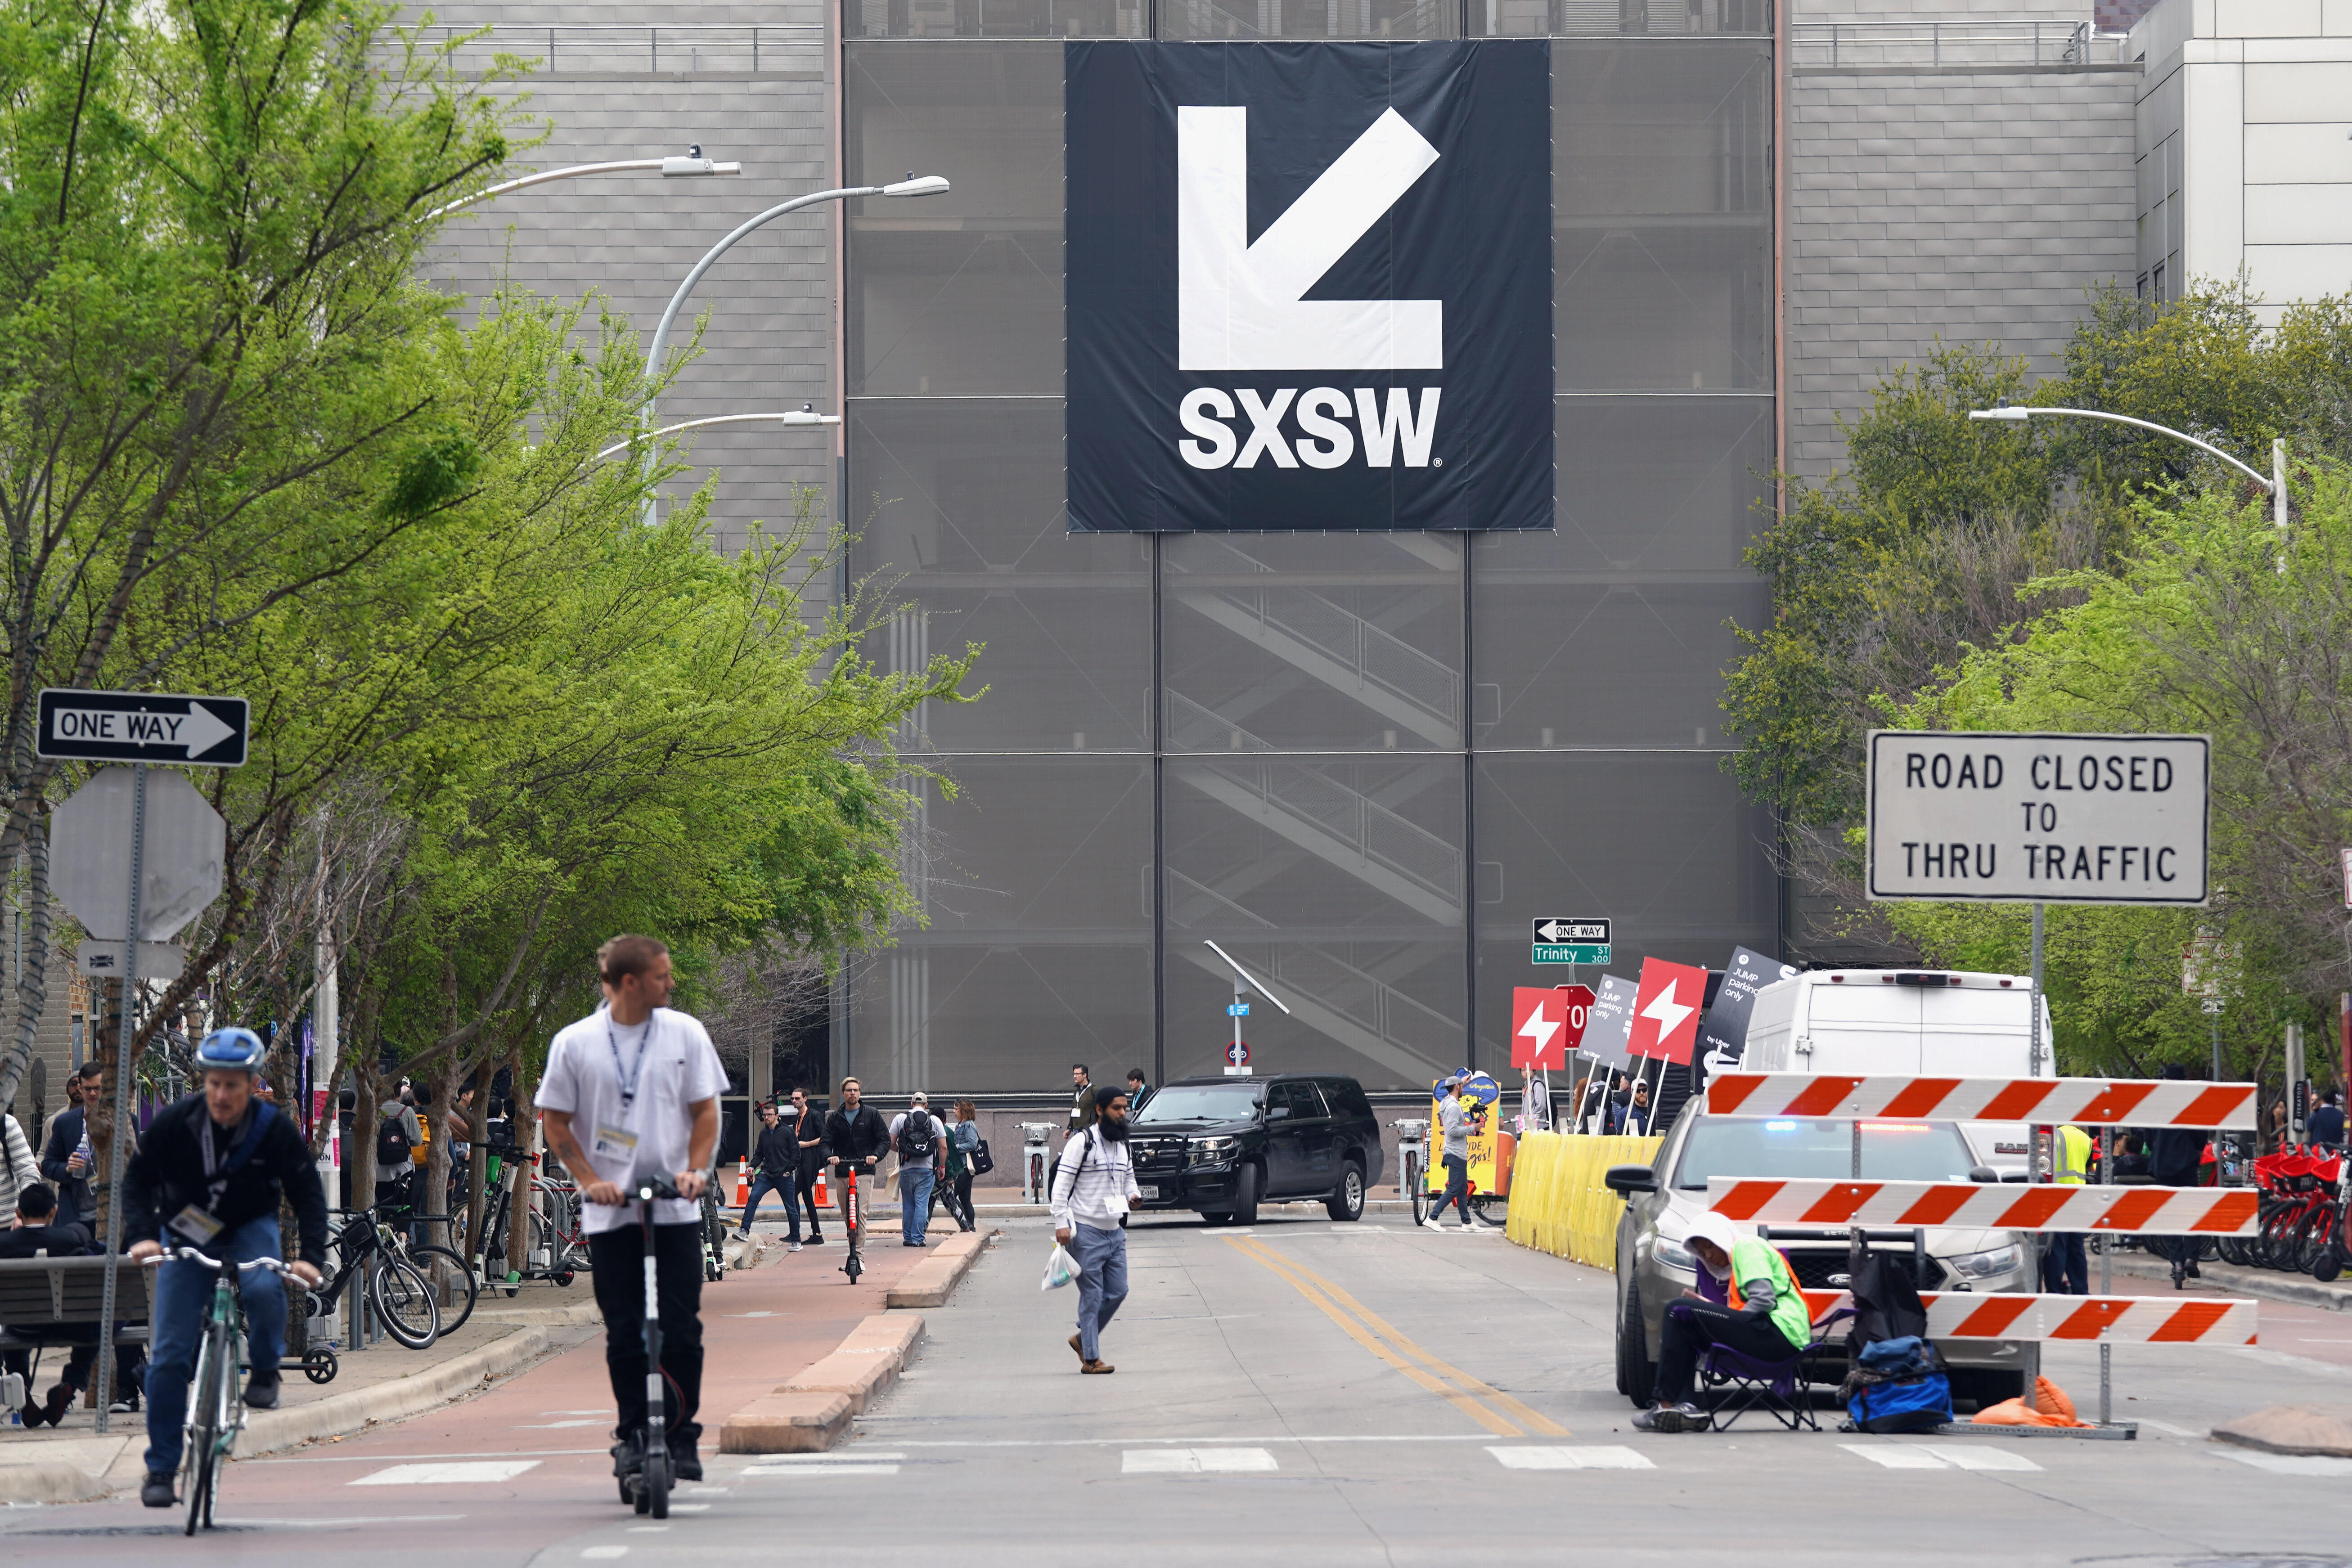 sxsw-gettyimages-1129921551